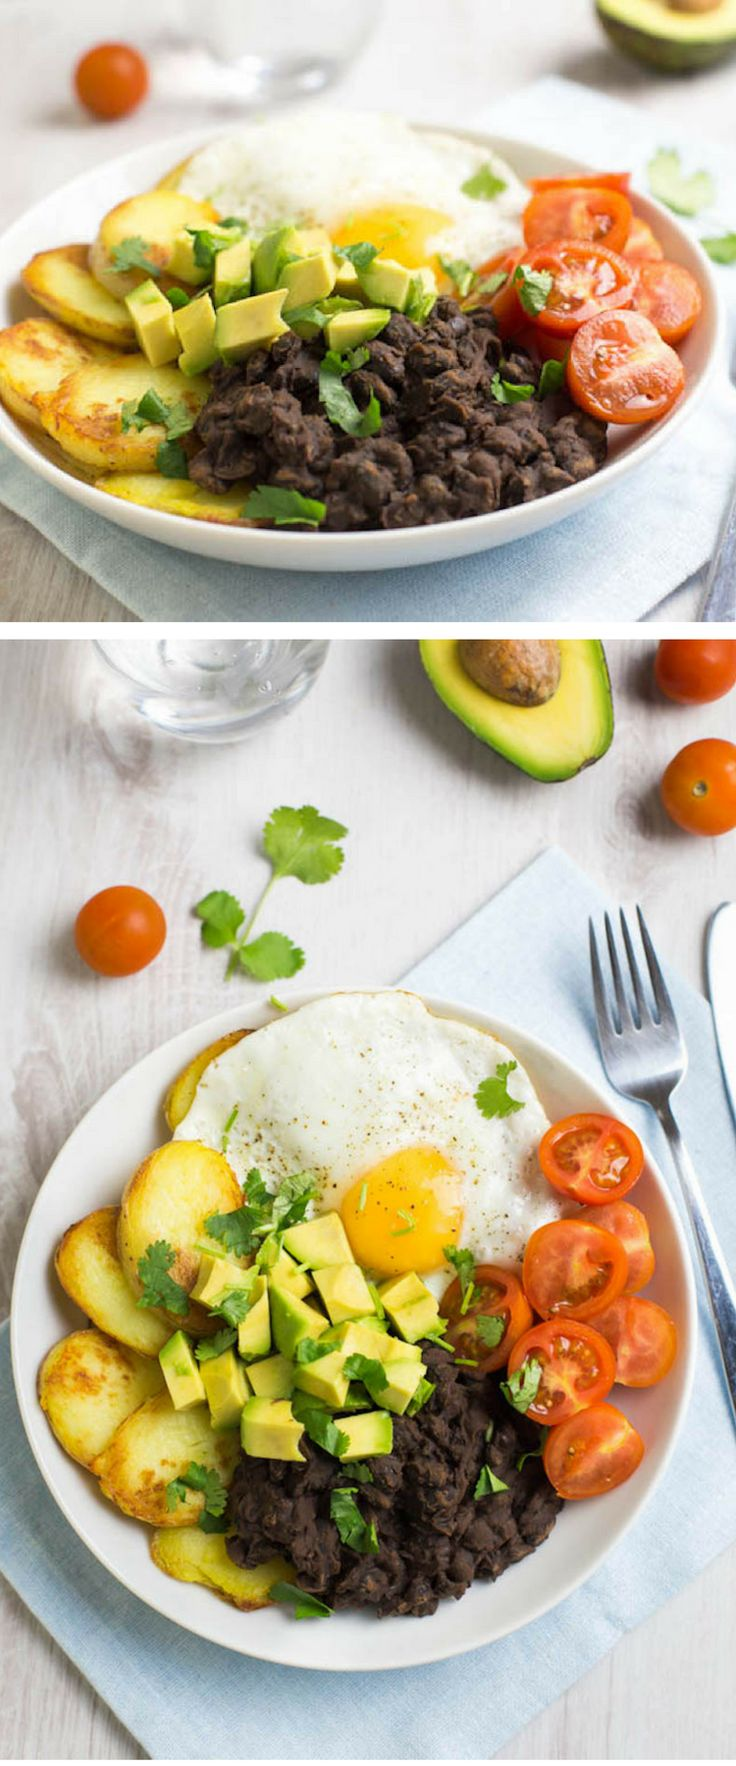 Chipotle Black Bean Breakfast Bowl // Bowls aren't just for dinner! Potatoes, smoky black beans, runny eggs will become your new breakfast go-to. Top with avocado, tomatoes and cilantro and you're all set!